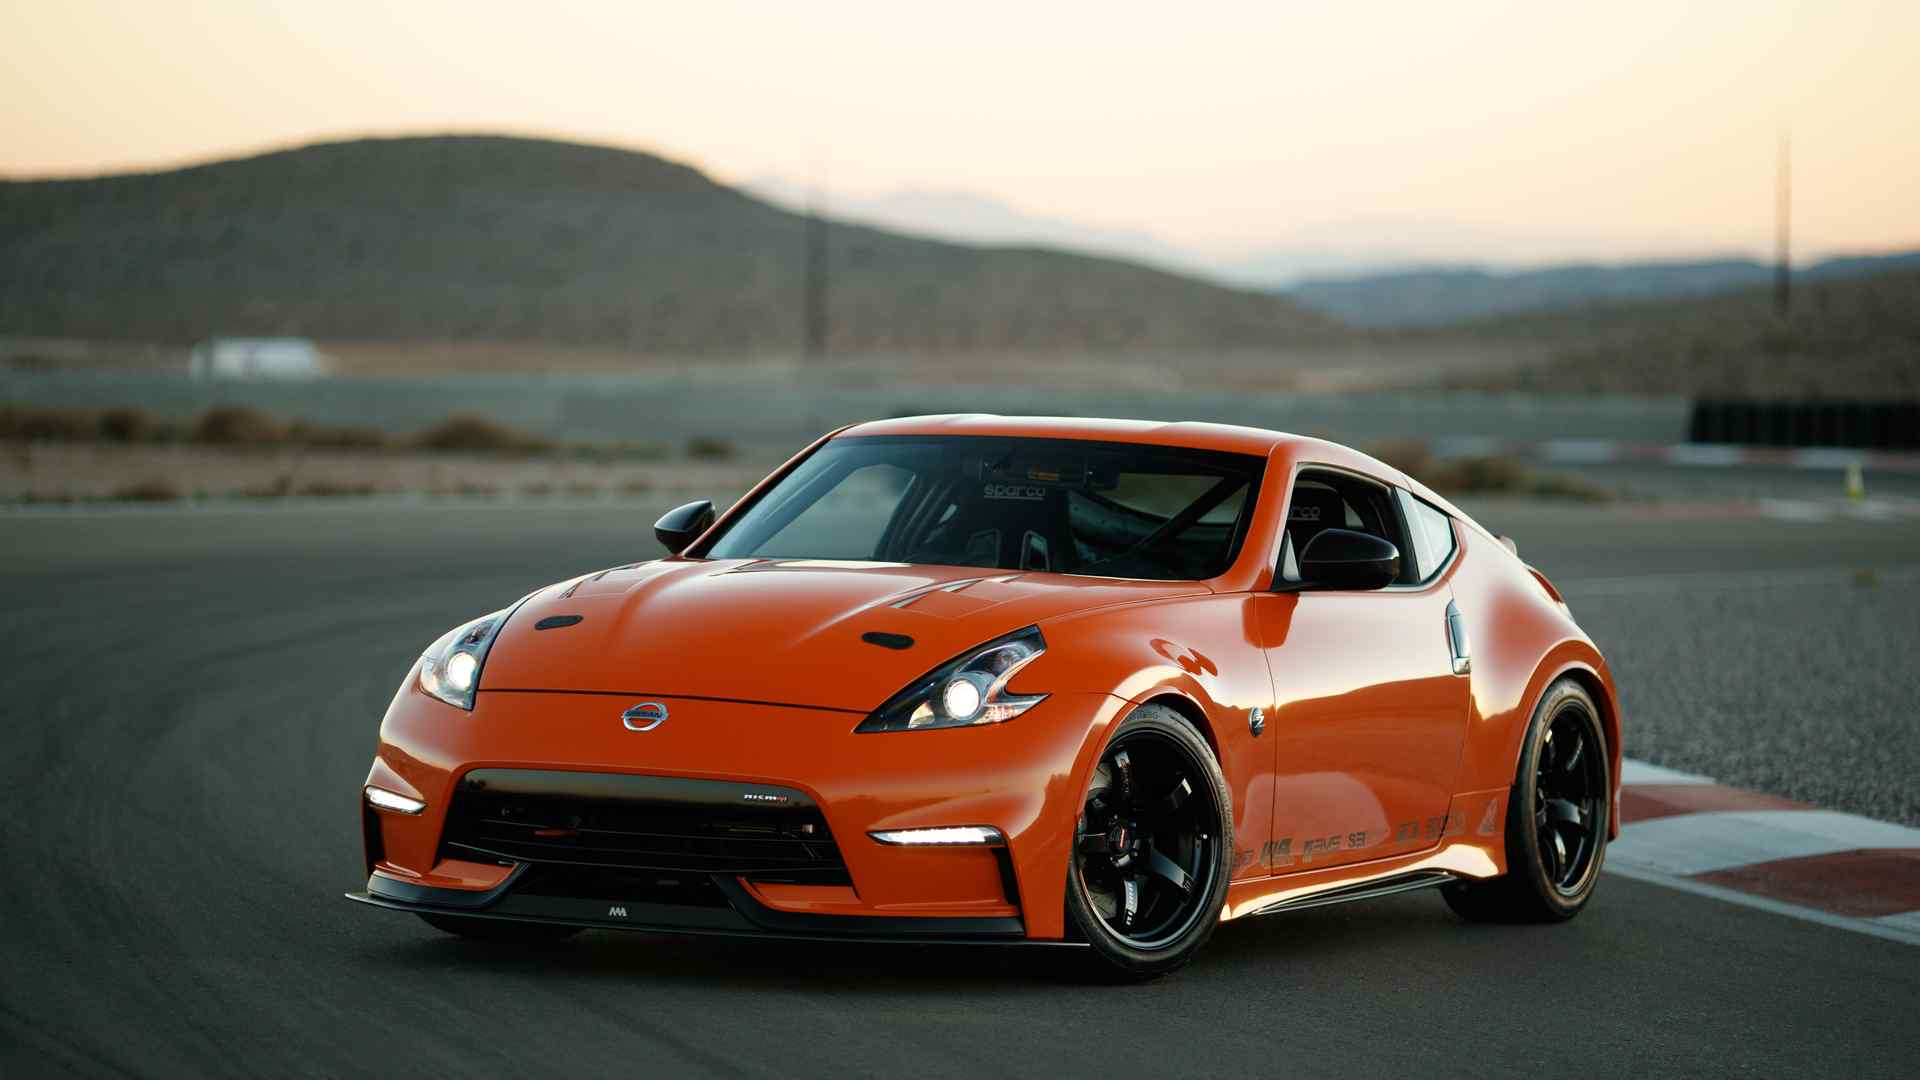 Купе Nissan 370Z Project Clubsport 23 получило новый мотор